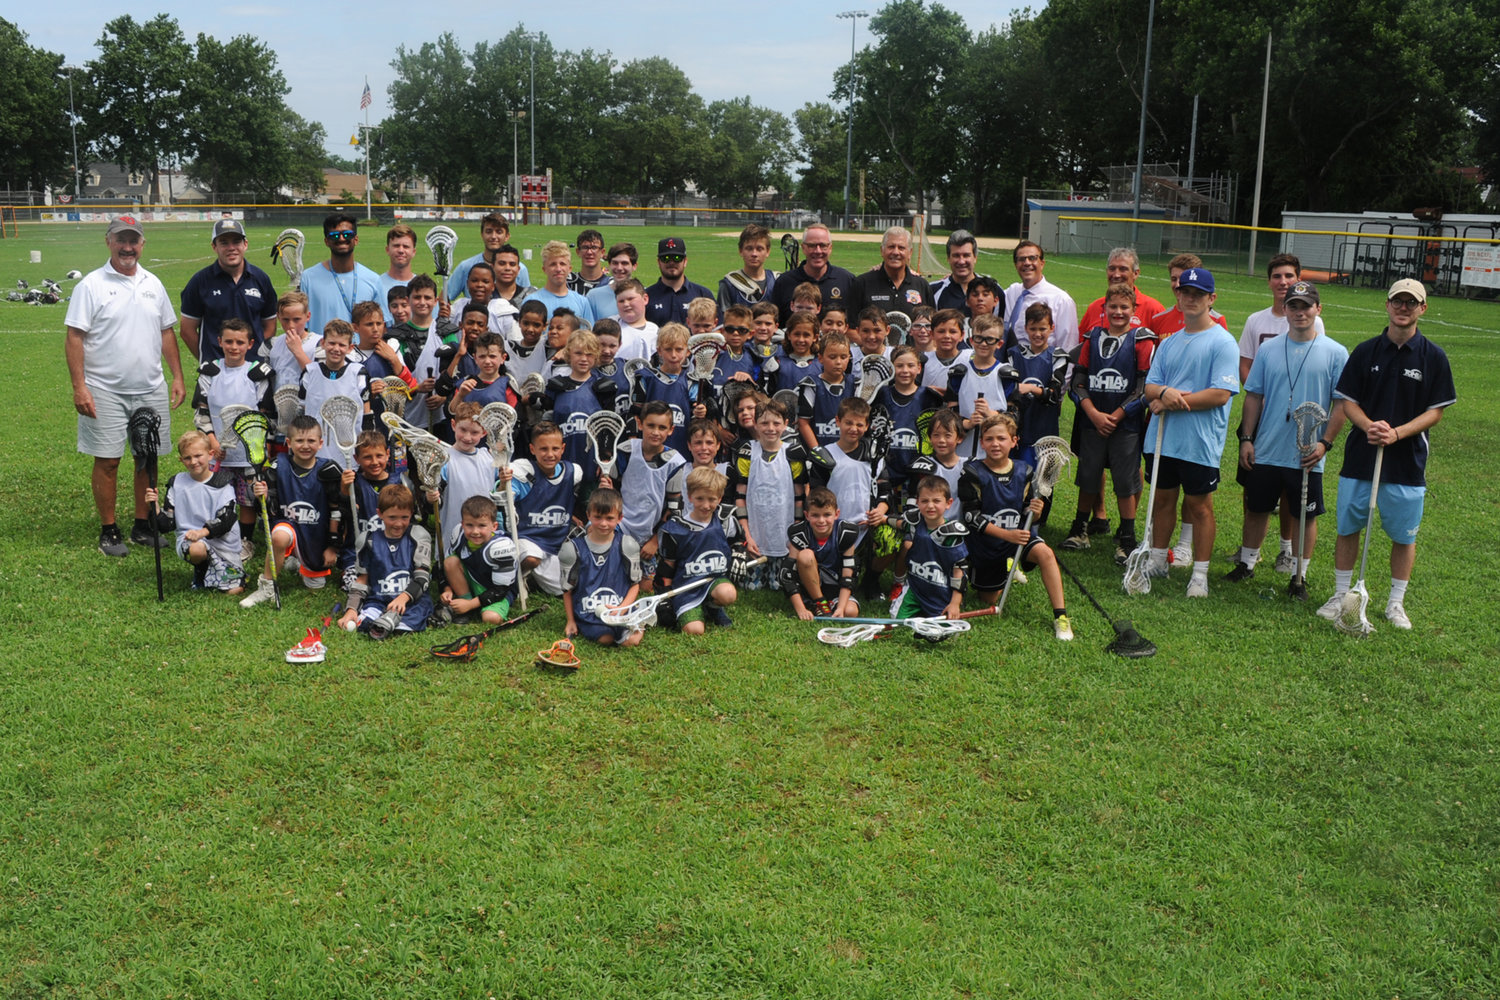 The Town of Hempstead Lacrosse Academy hosted its 15th season at Rath Park last week.